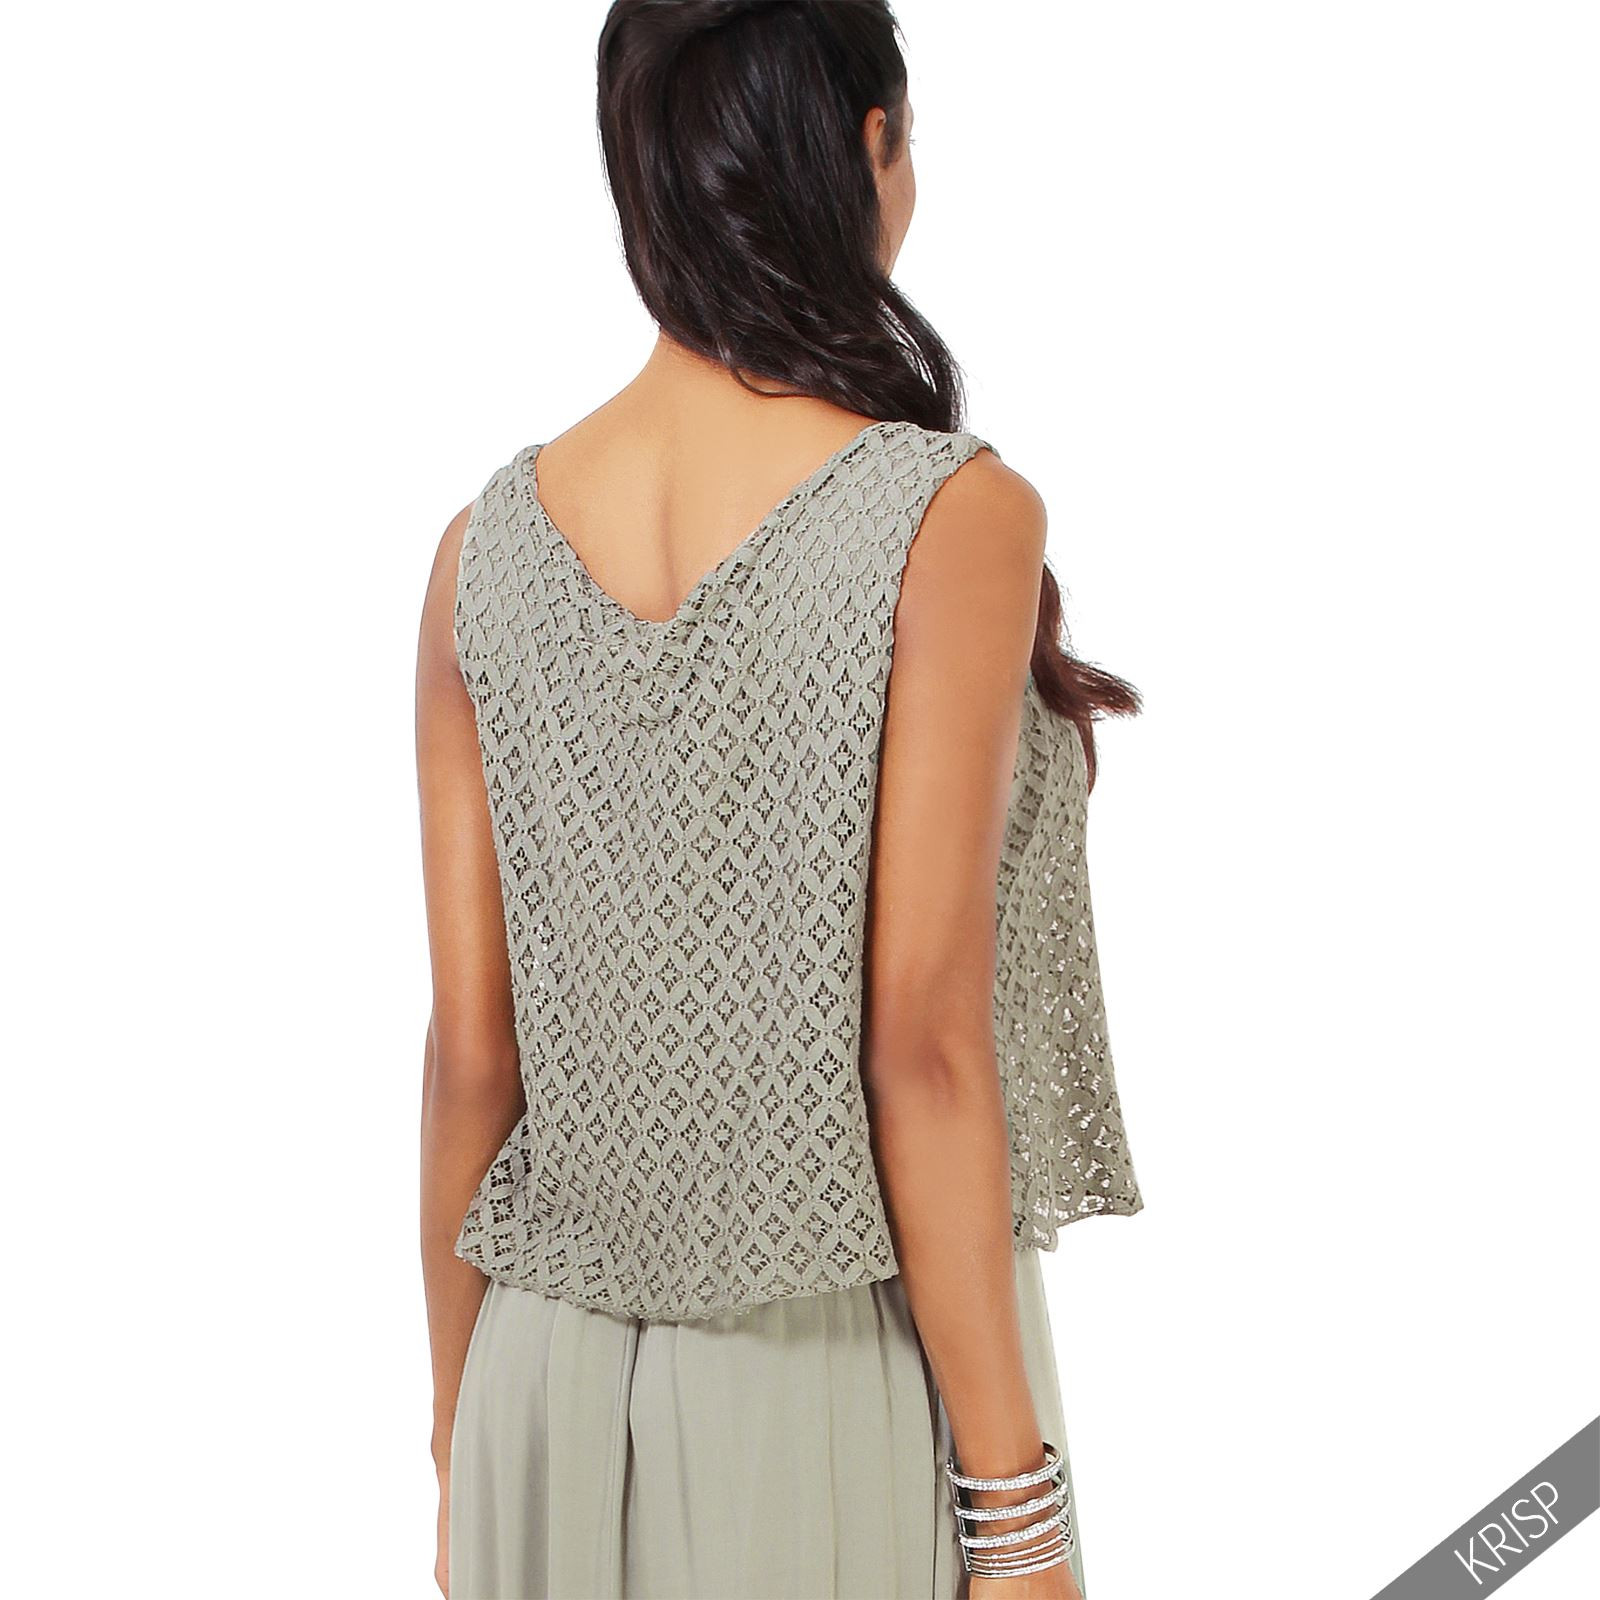 Women La s Oversize Crochet Vest Top Long Maxi Dress